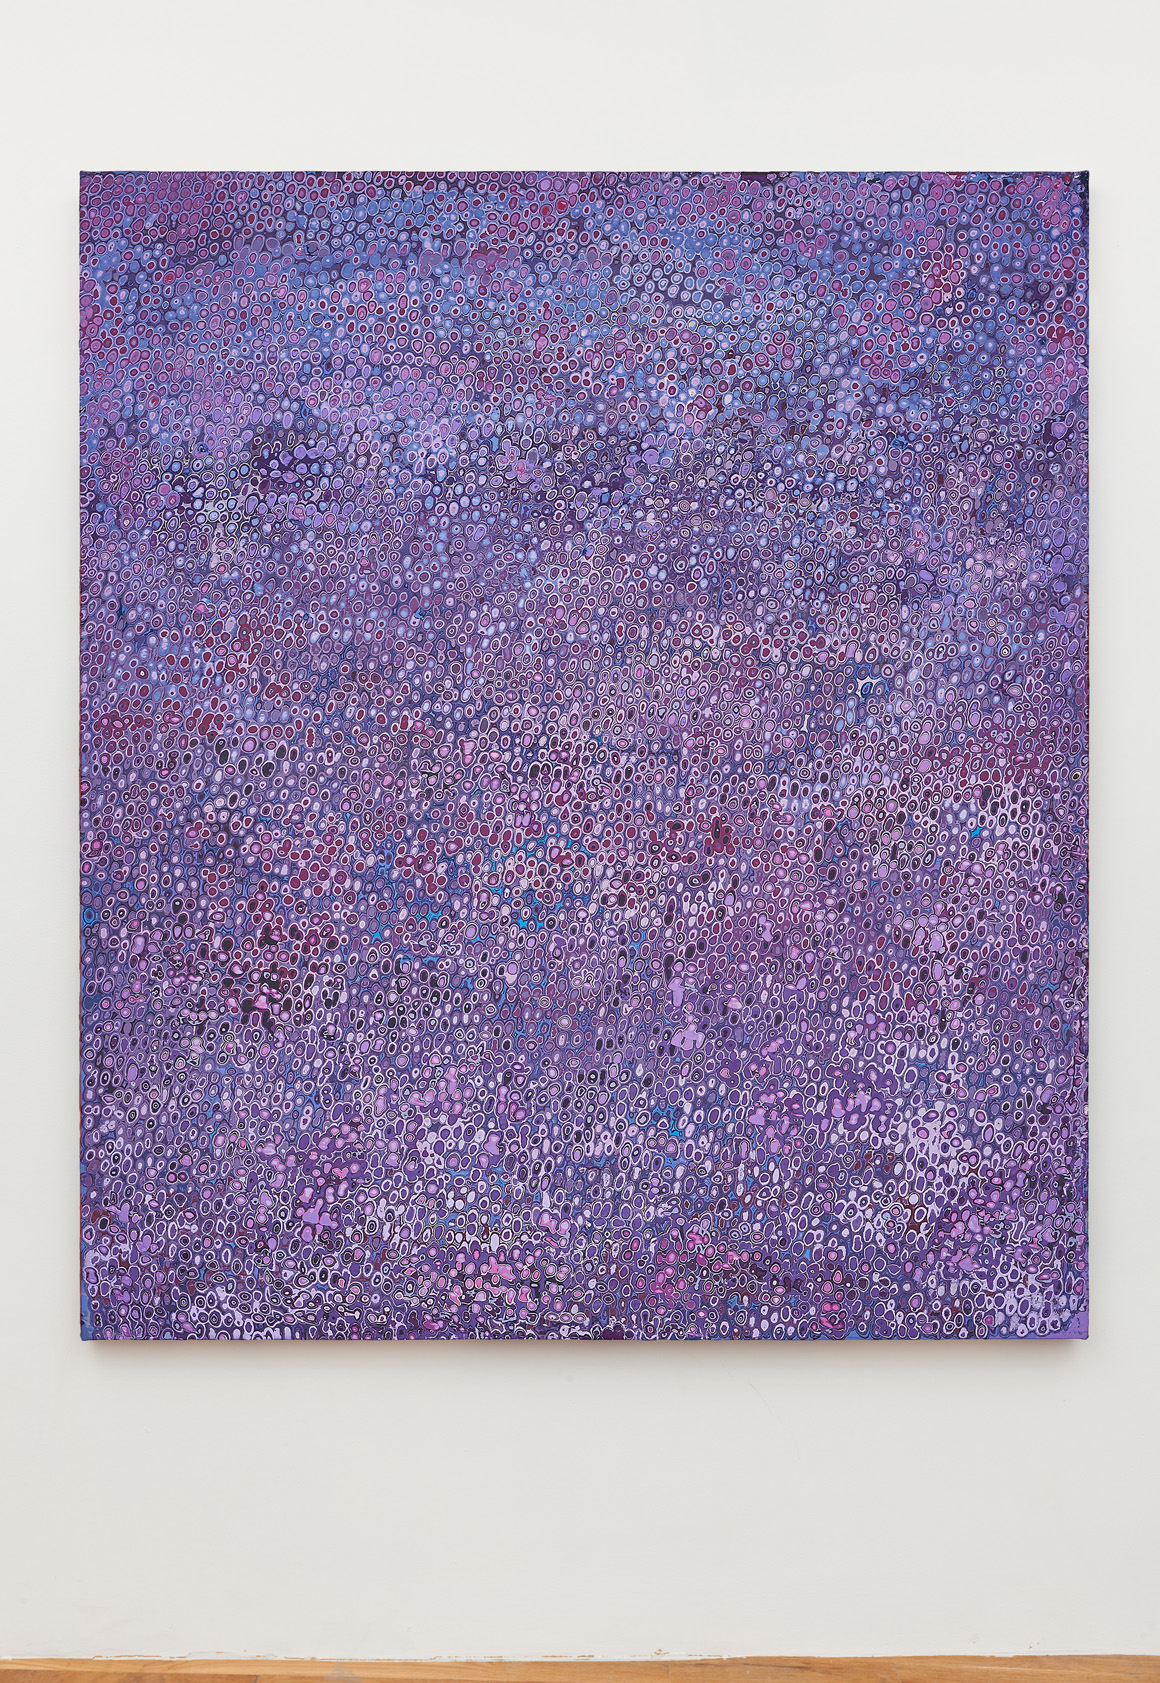 "<p><span class=""name"">Andrew Jensdotter</span><br><em>Purple 101</em><span class='media'>Carved latex on canvas</span>80 x 68 in (203.2 x 172.7 cm)<br>2018<br><a class='inquire' href='mailto:info@gildargallery.com?subject=Artwork Inquiry AJEN0051&body=I am interested in finding out more about Purple 101 by Andrew Jensdotter'>Inquire</a></p>"